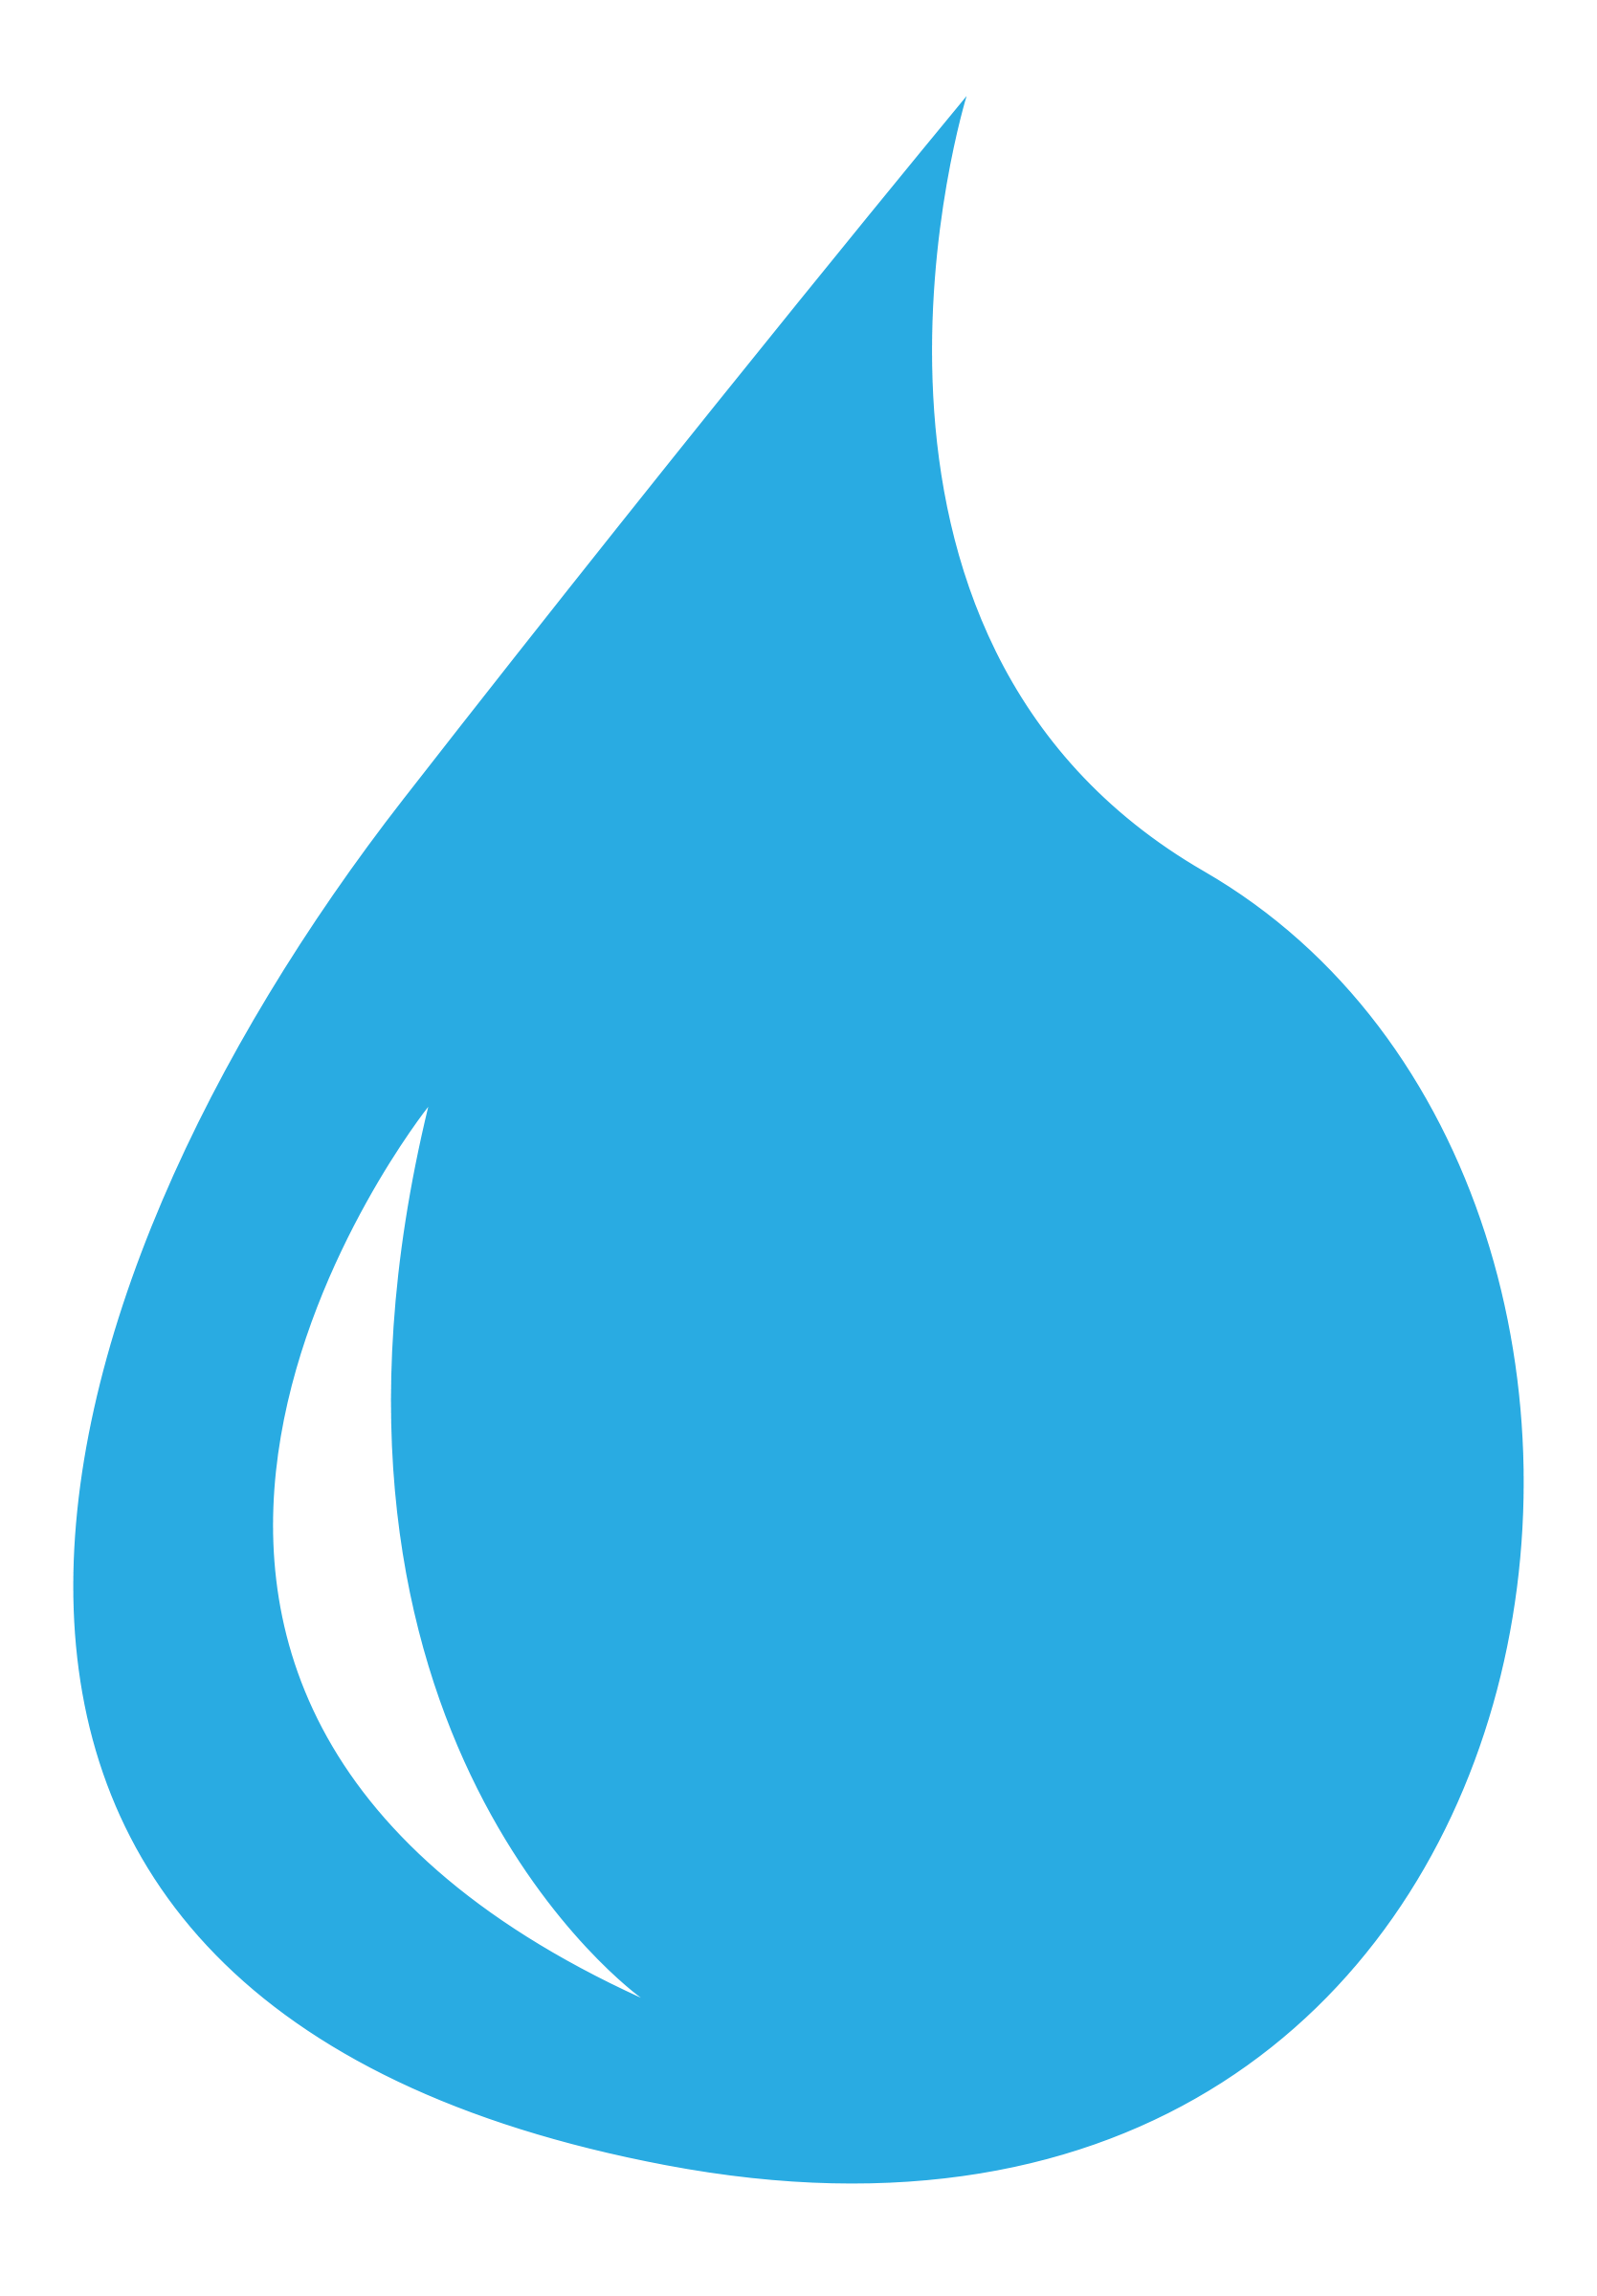 Drop of water clipground. Raindrop clipart watr